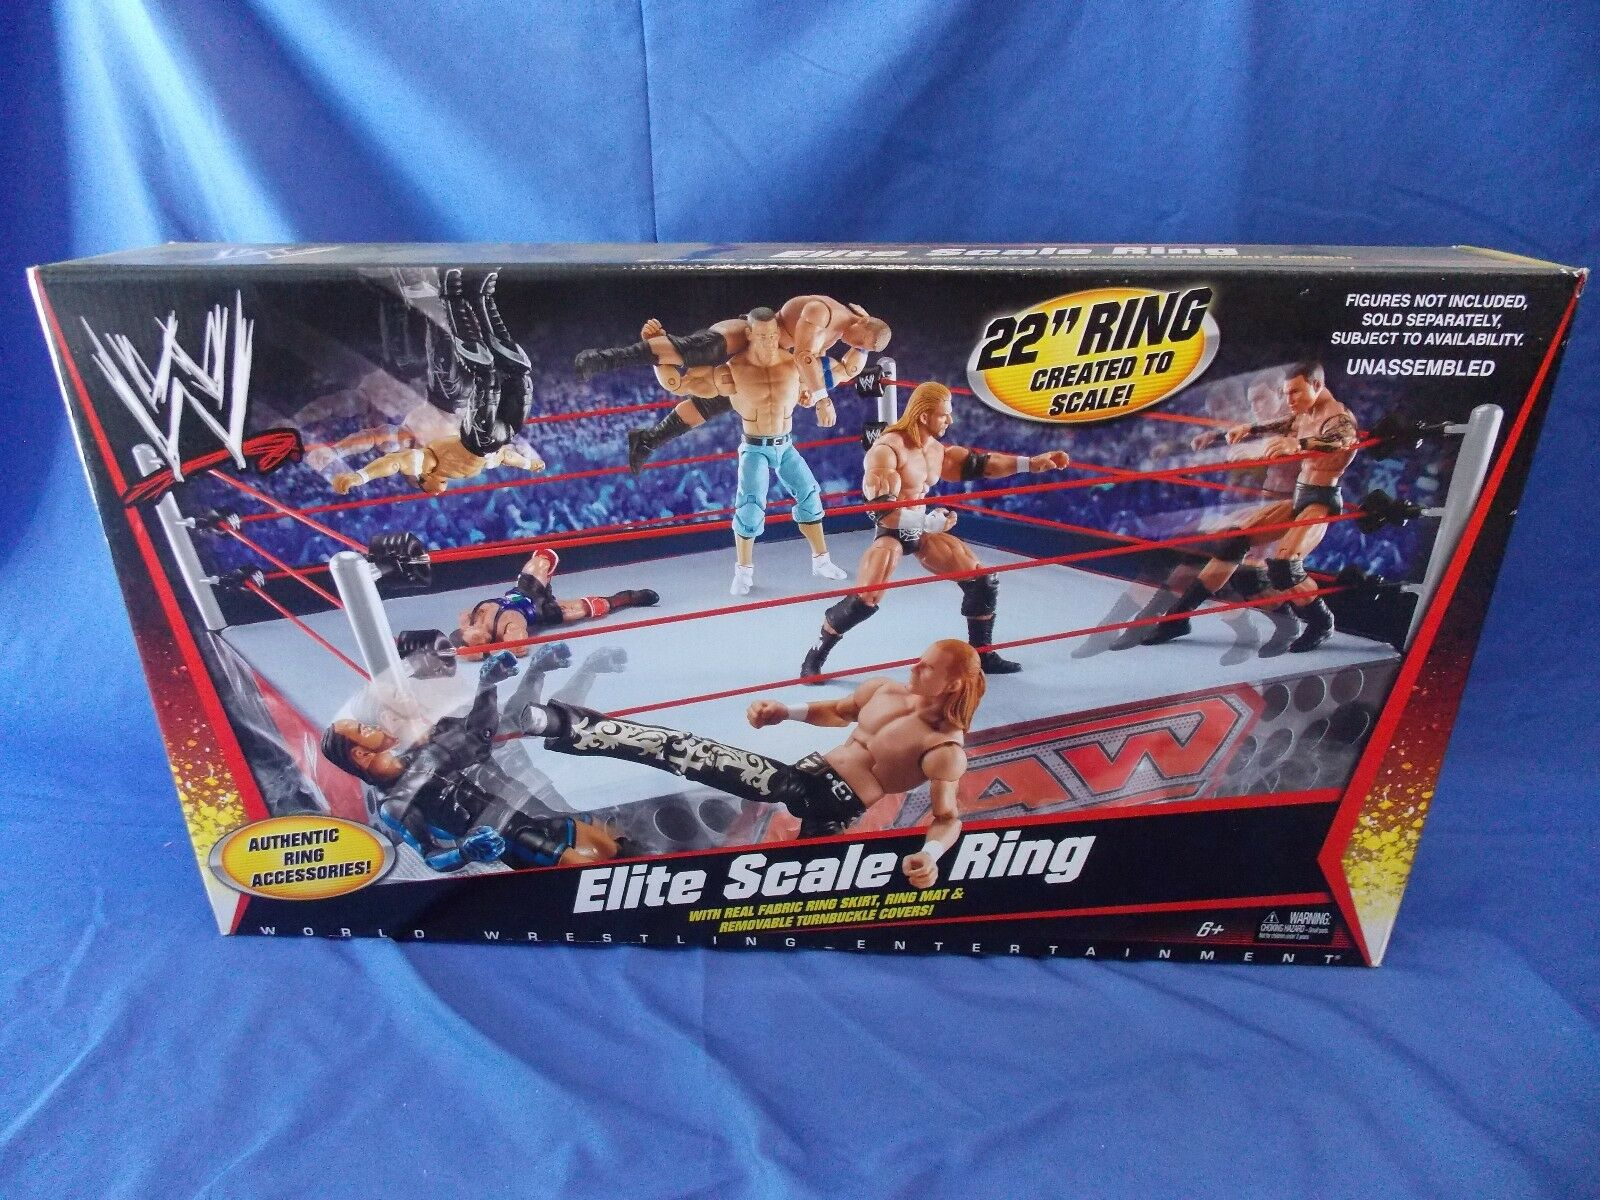 WWE ELITE SCALE ACTION FIGURE WRESTLING RING MATTEL 1ST RELEASE 2010